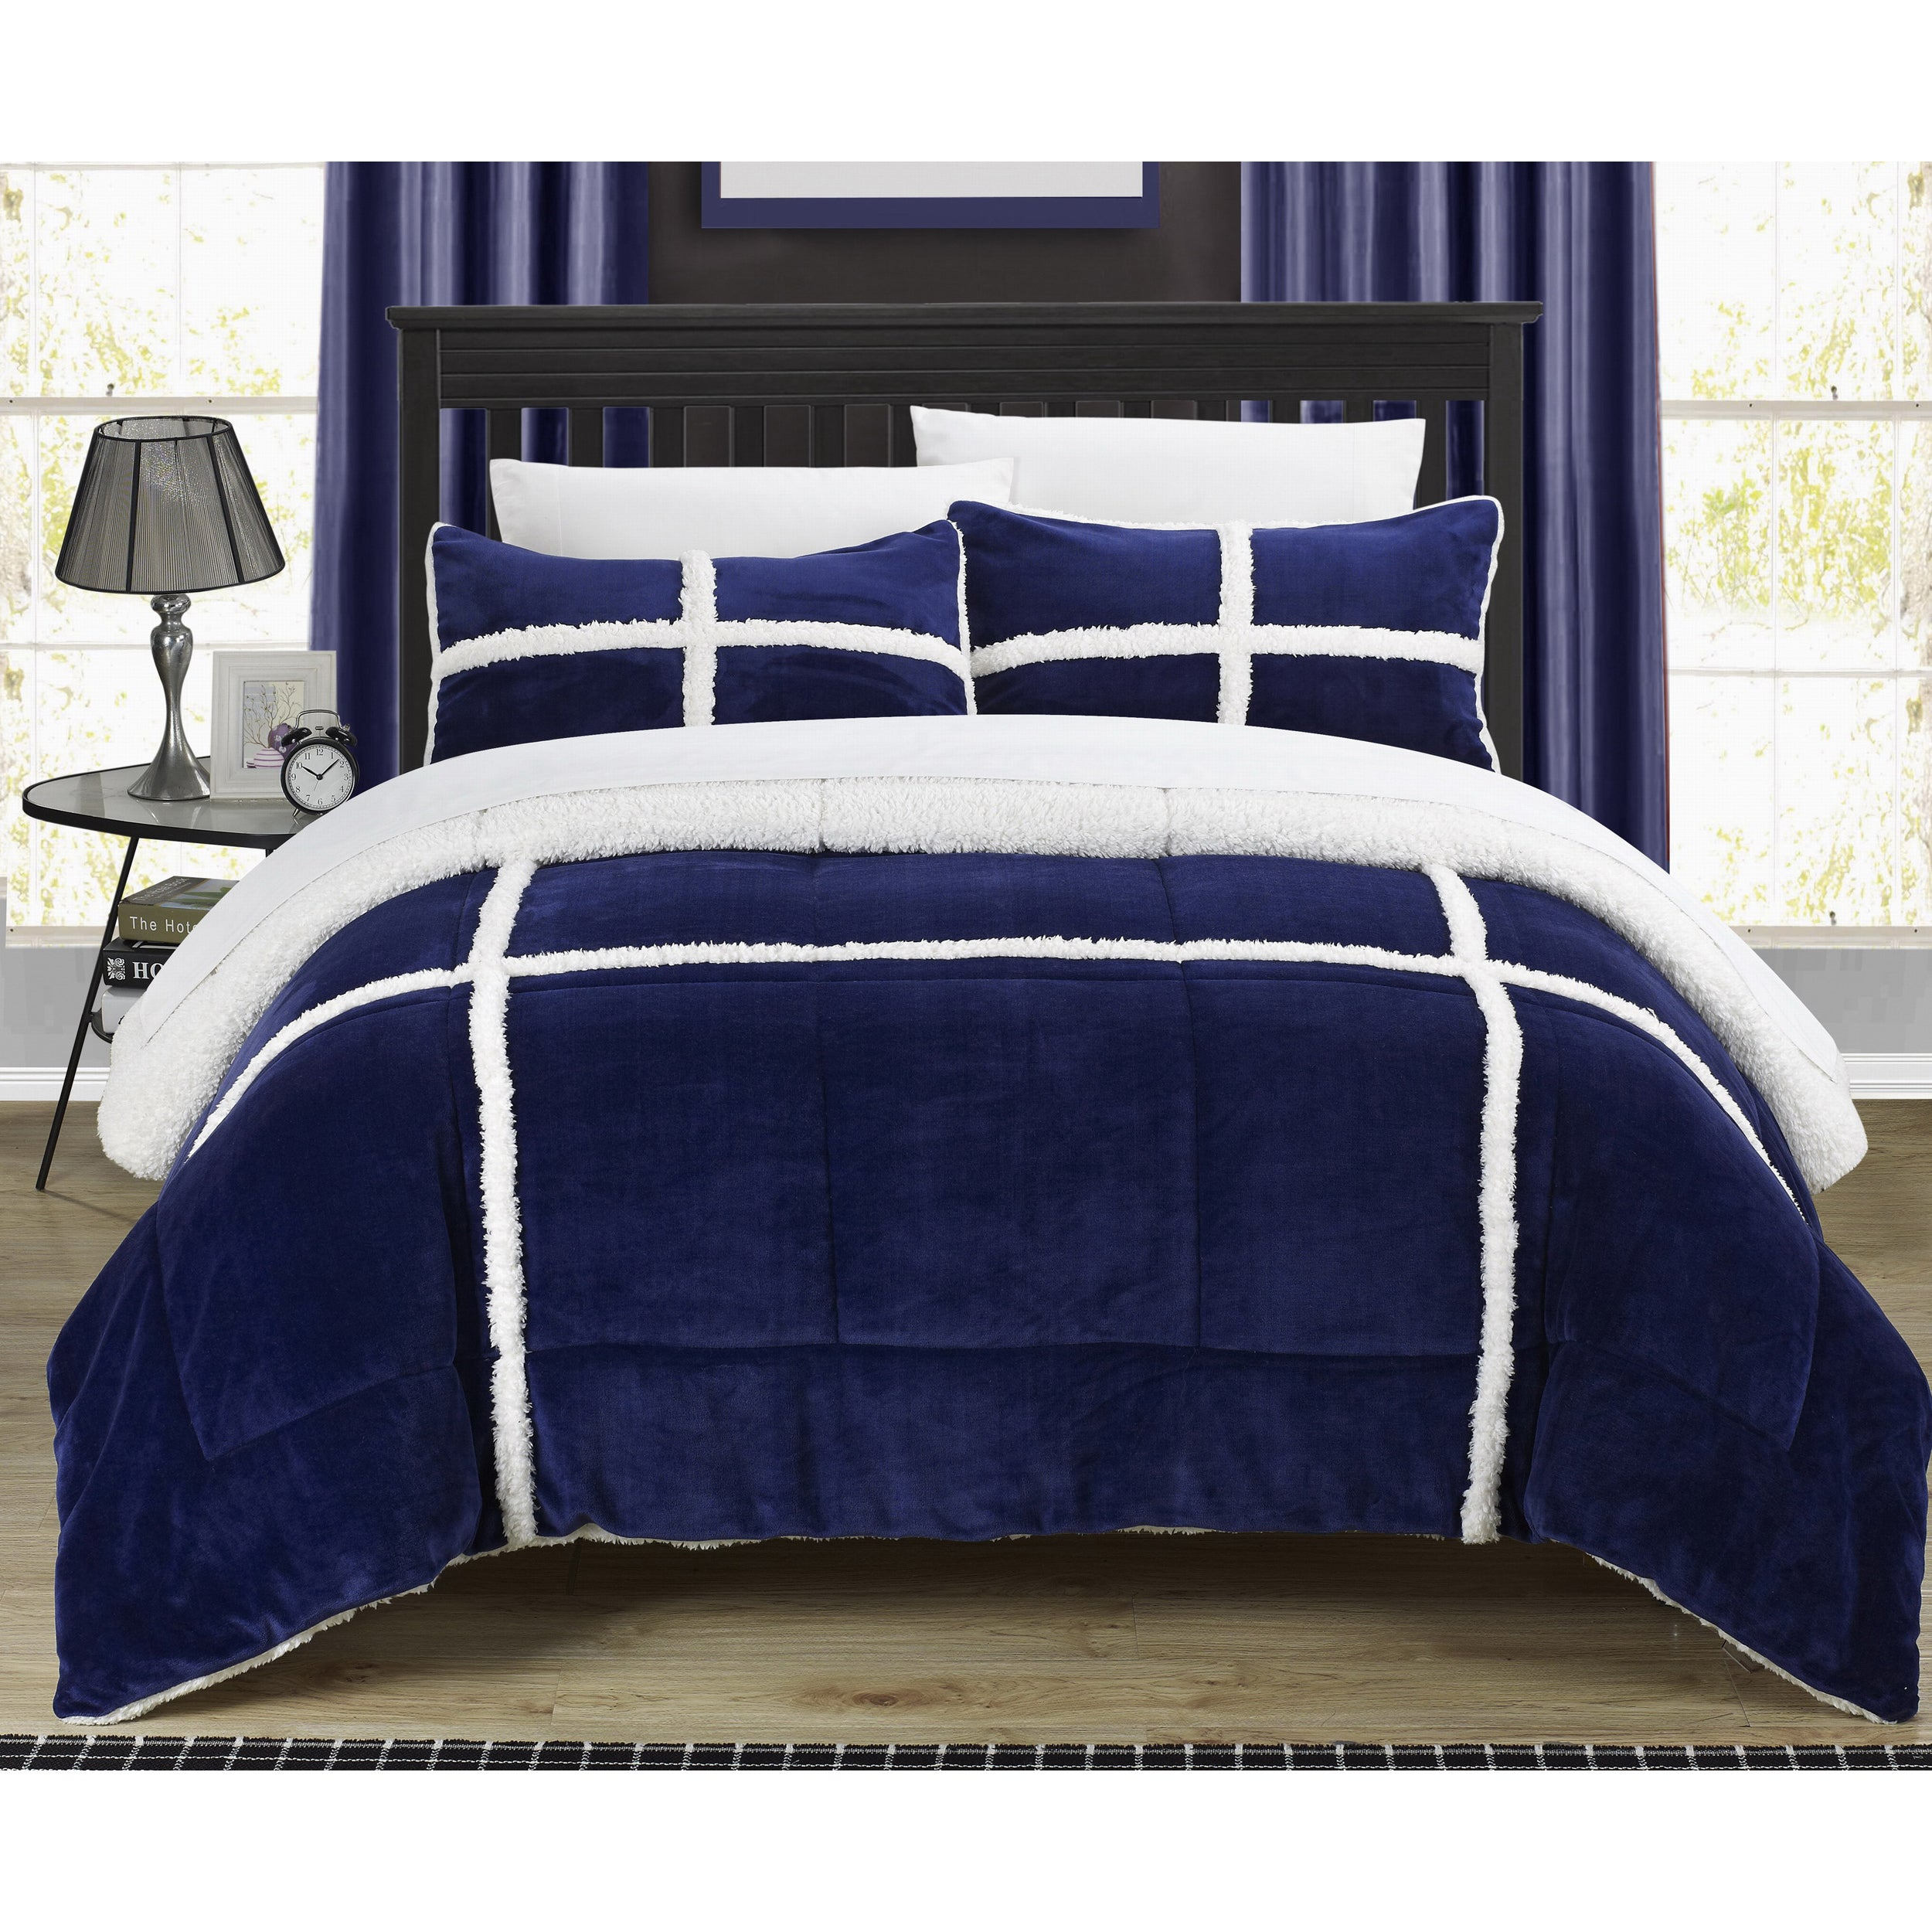 Chic Home 3 Piece Chiron Mink Sherpa Lined Comforter Set Navy On Sale Overstock 14544889